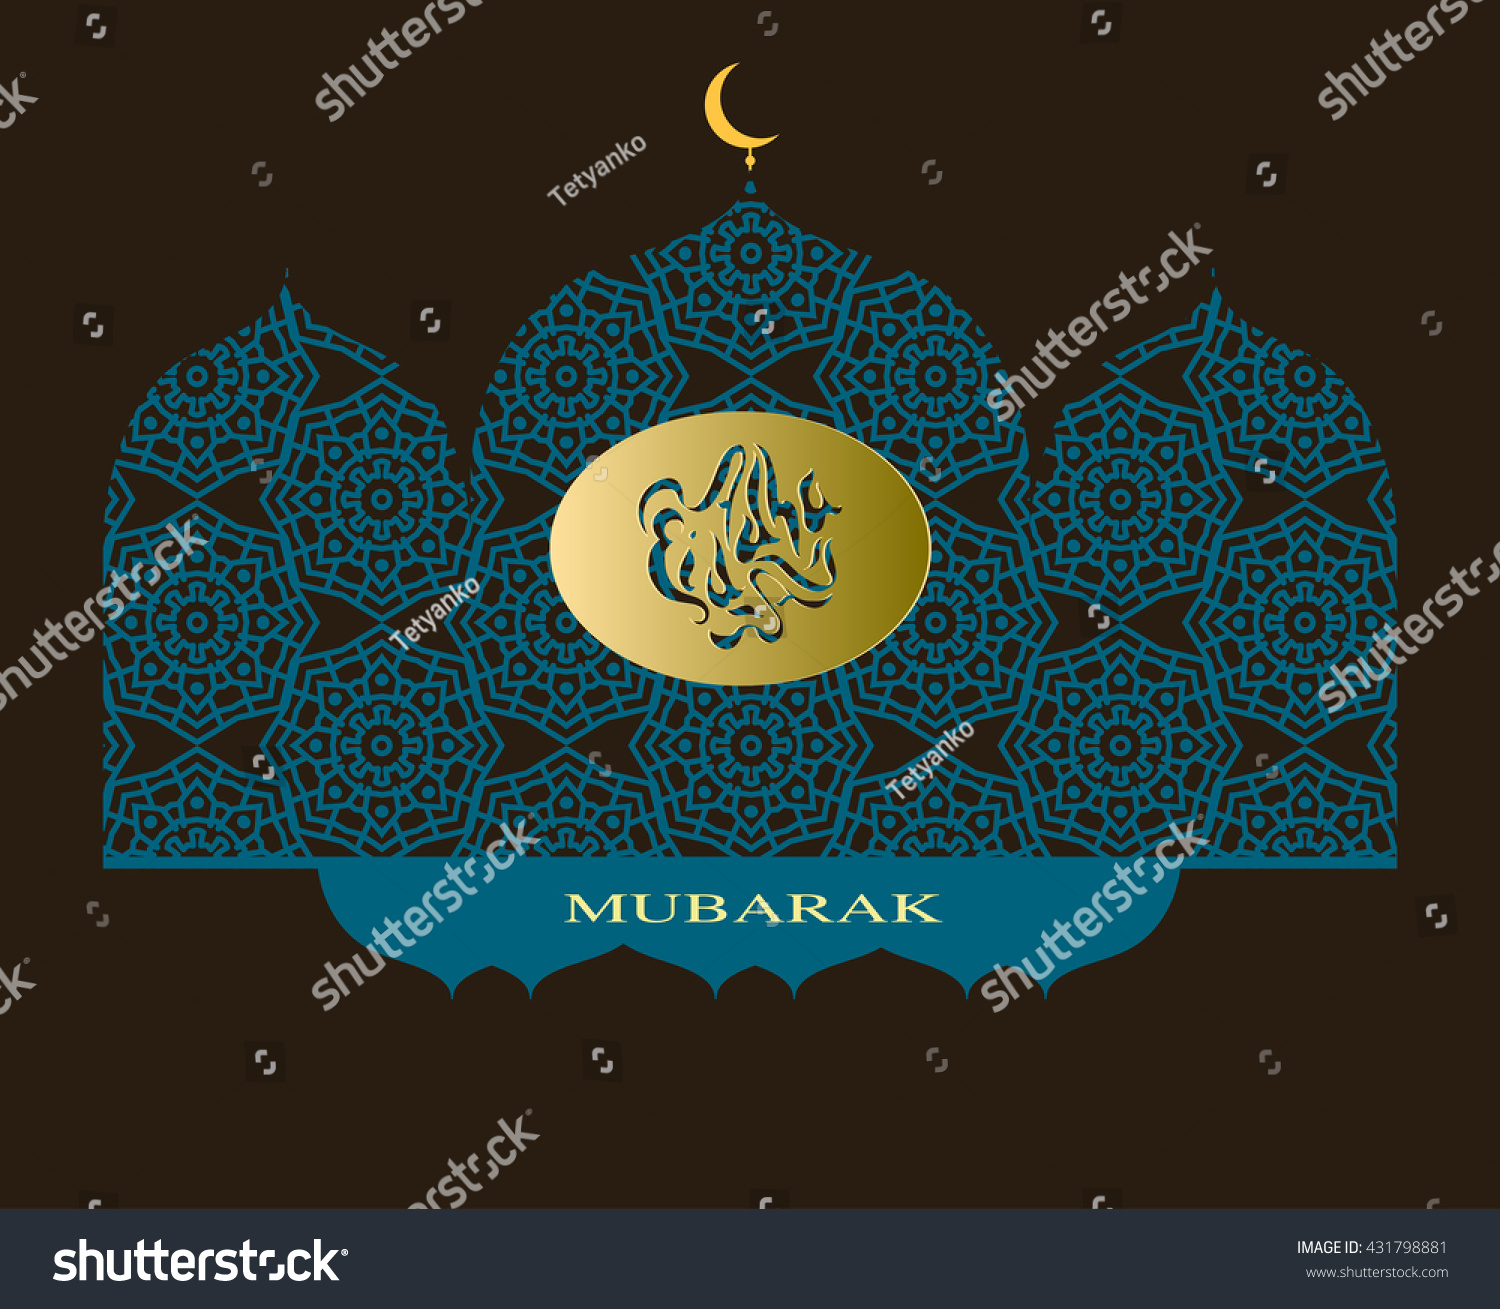 Top Eid Mubarak Eid Al-Fitr Decorations - stock-vector-muslim-festival-eid-al-adha-eid-al-fitr-eid-mubarak-illustration-vector-holiday-ornament-431798881  Perfect Image Reference_384359 .jpg